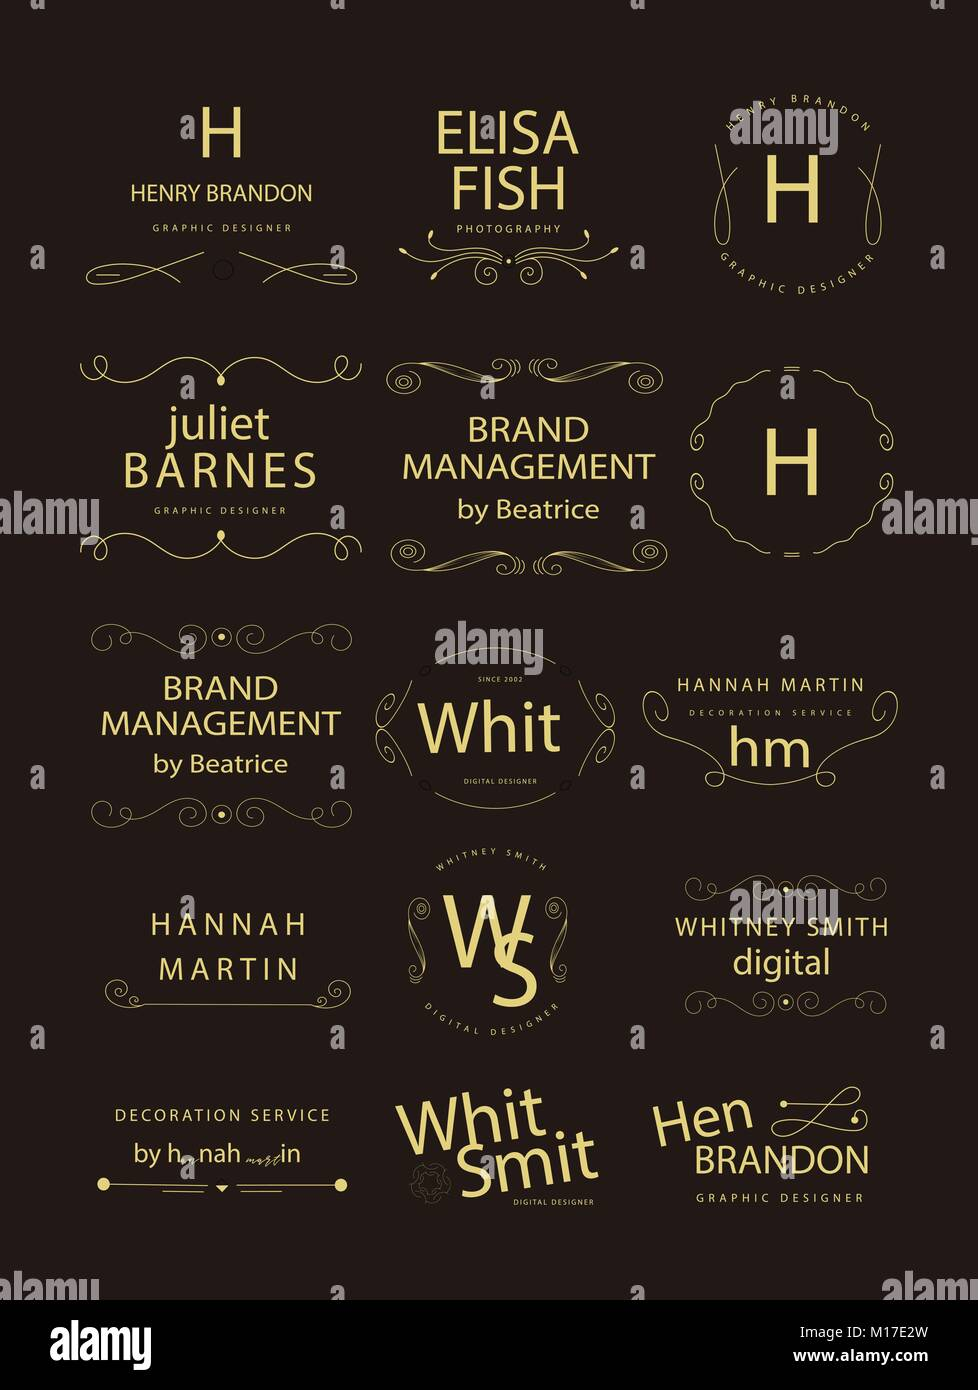 Retro Vintage Insignias or Logotypes set. Vector design elements, business signs, logos, identity, labels, badges - Stock Vector